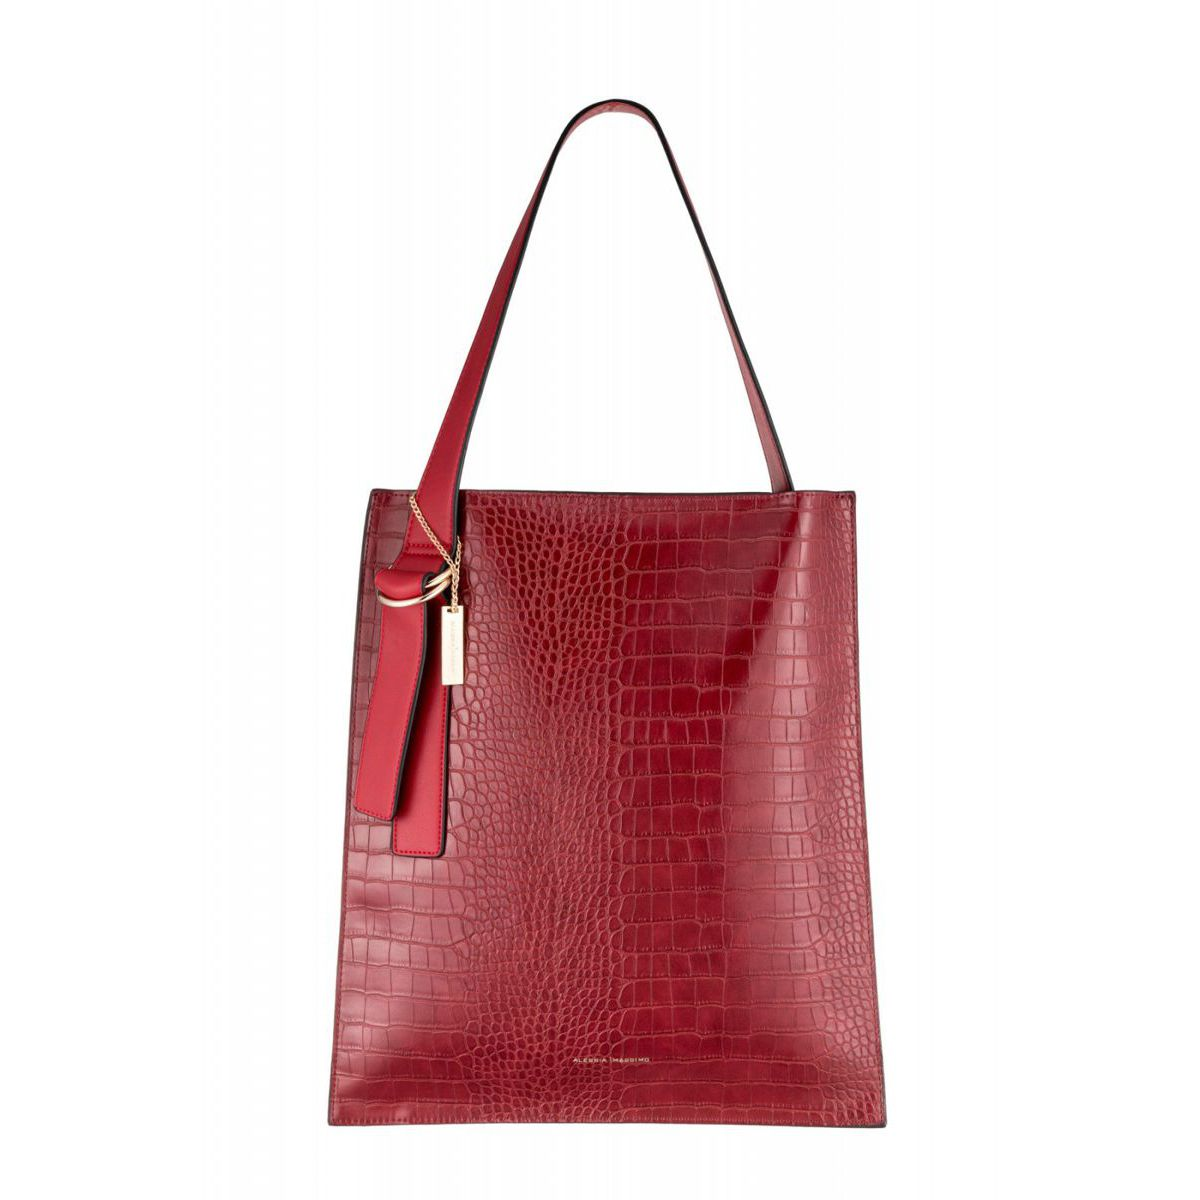 STYLE1184 BAG Red Alessia Massimo